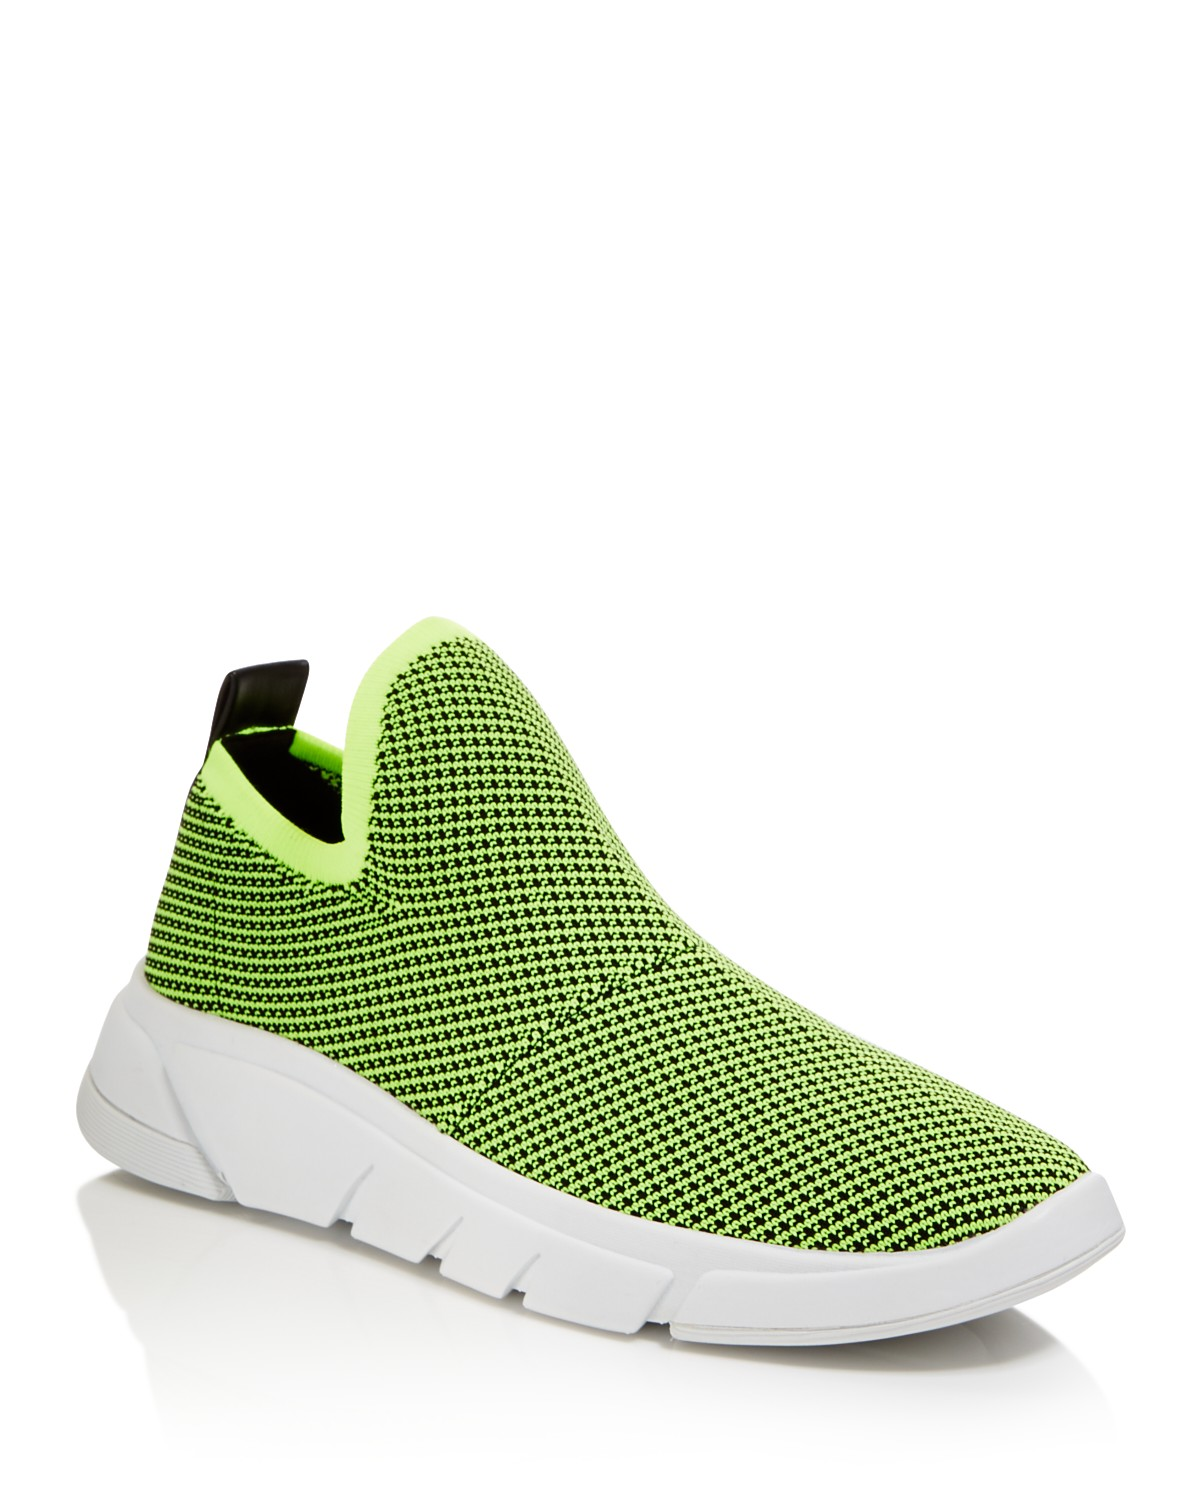 Kendall And Kylie Women's Caleb Slip-On Sneakers - 100% Exclusive od6LZ1N